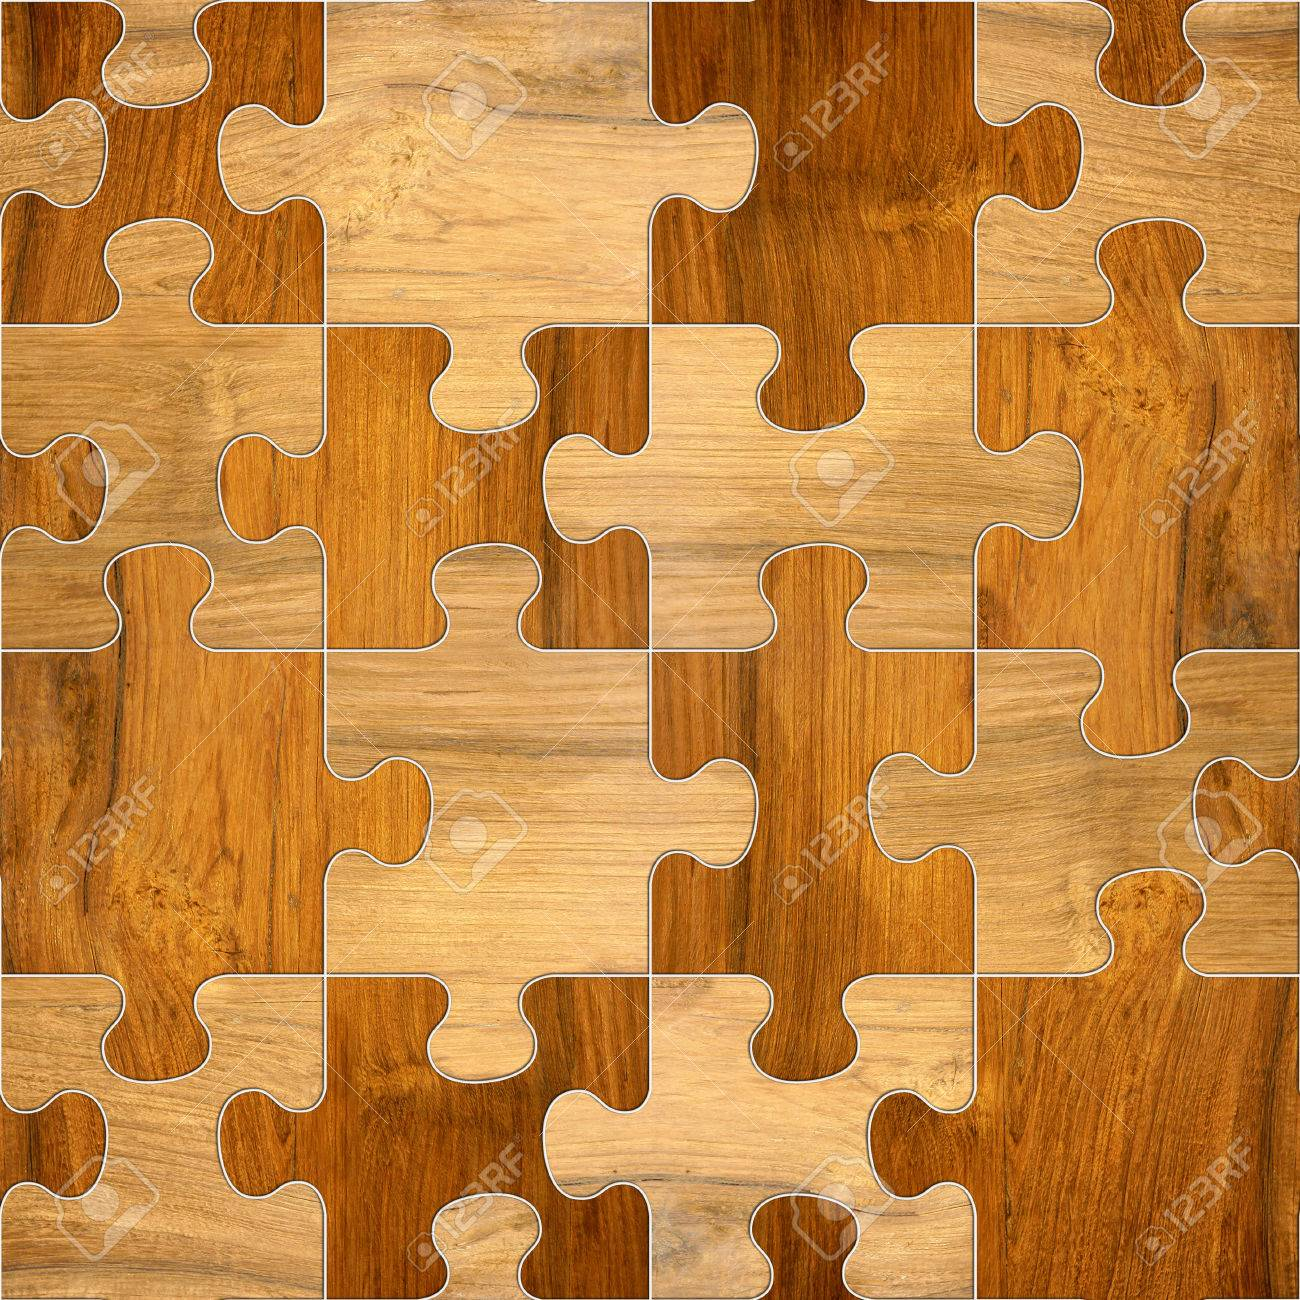 background with wooden patterns of different colors and puzzle shapes wooden patterns wallpaper texture - Puzzle Wood Flooring